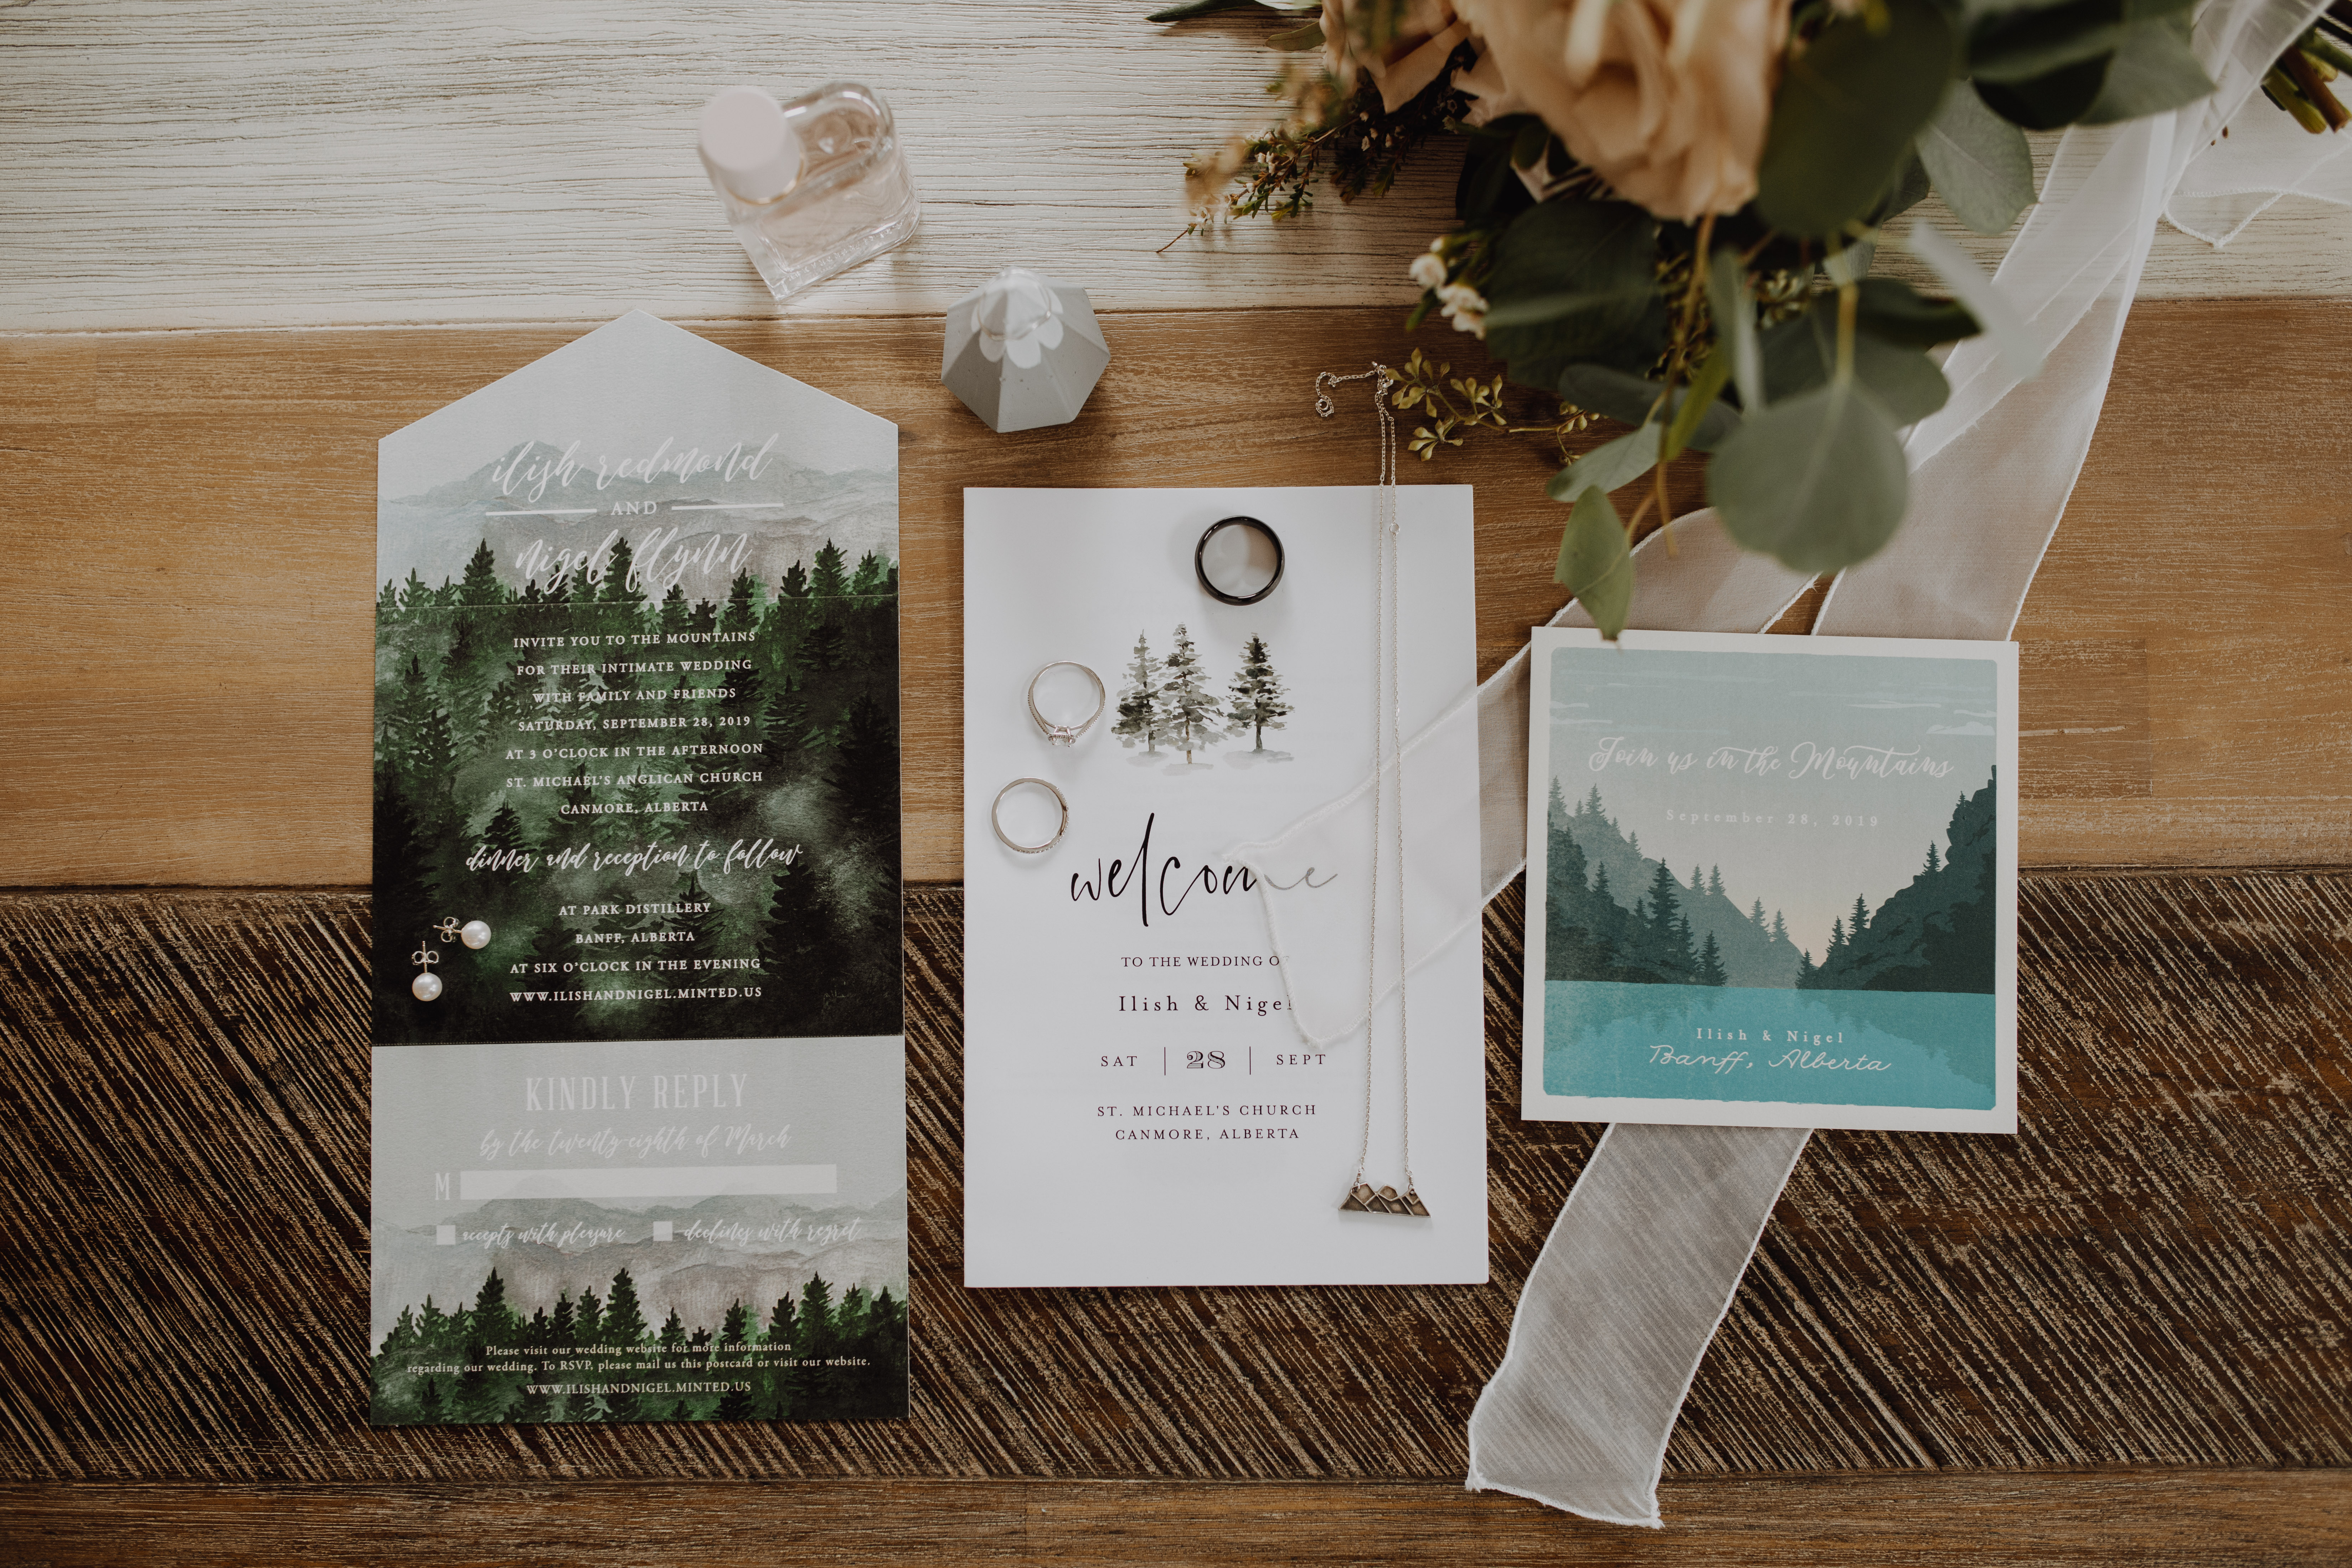 Banff Wedding - wedding details